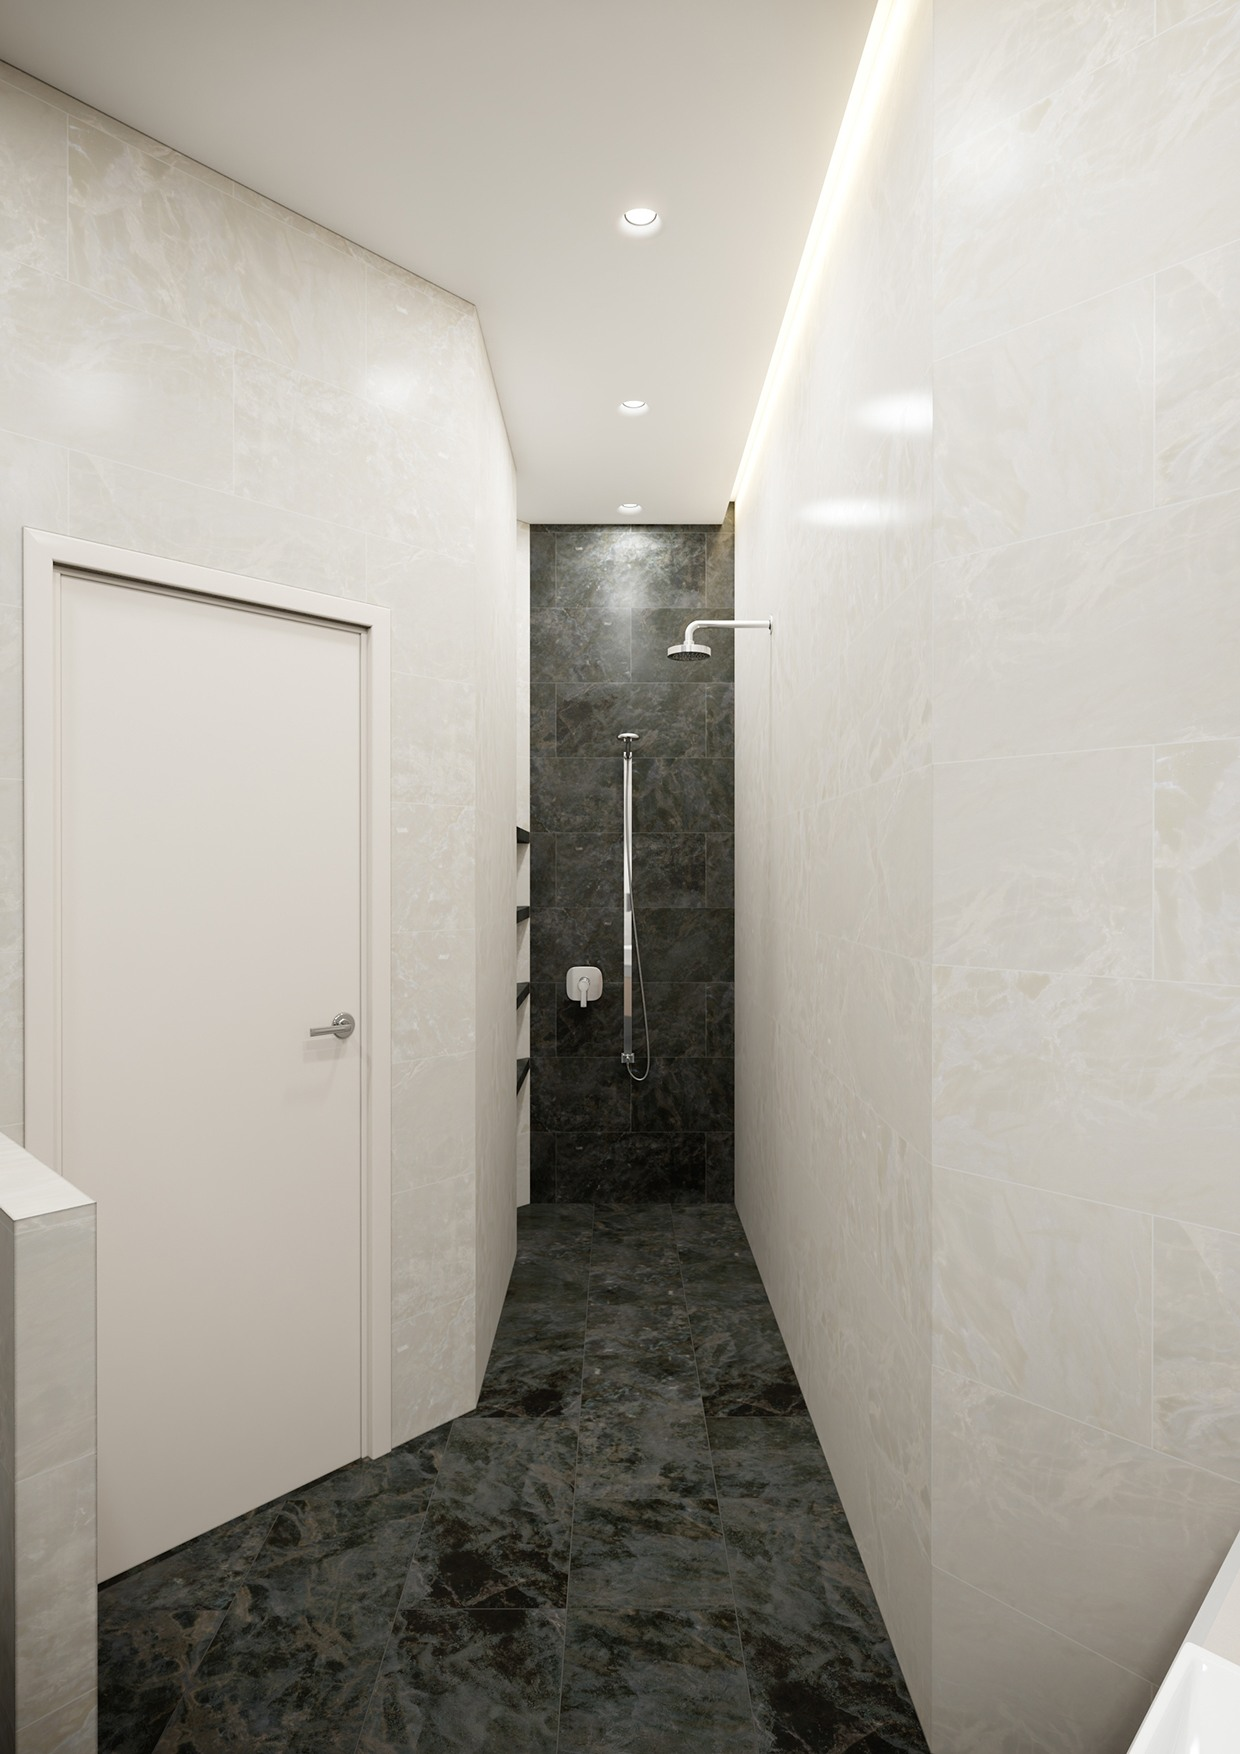 Cool Modern Shower - A stylish apartment with classic design features